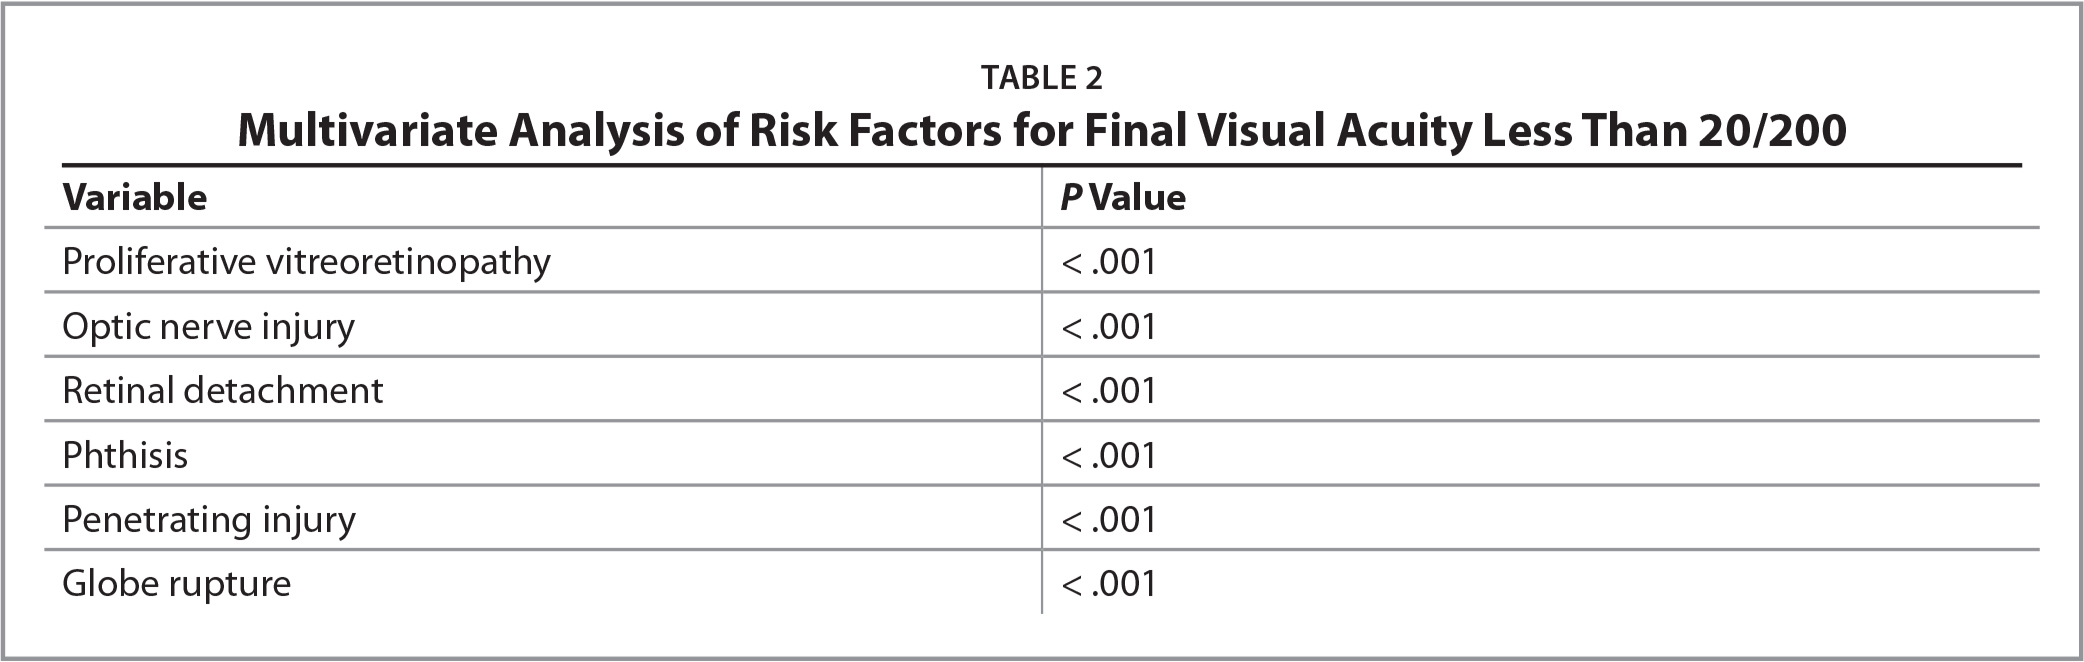 Multivariate Analysis of Risk Factors for Final Visual Acuity Less Than 20/200